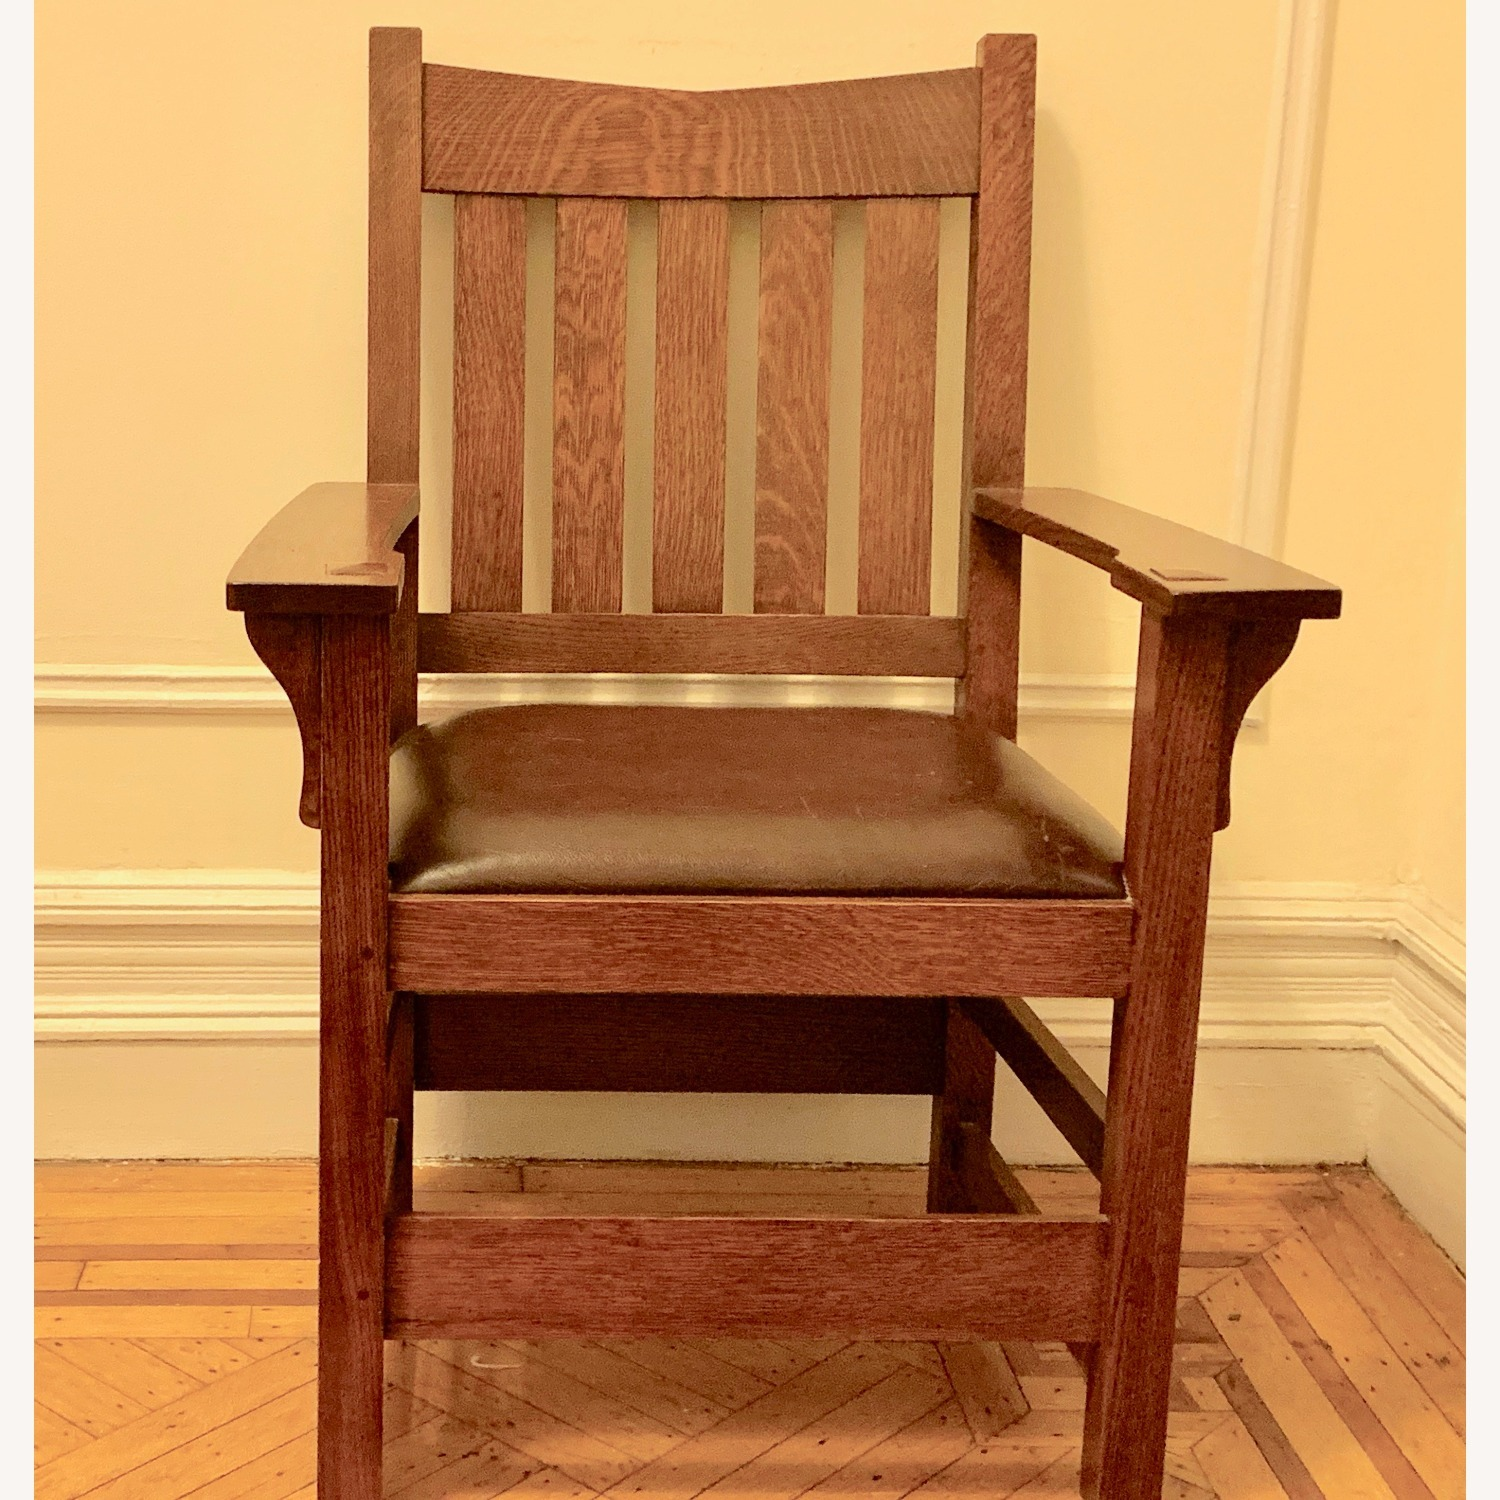 Stickley Mission Oak Chair with Leather Seat - image-1